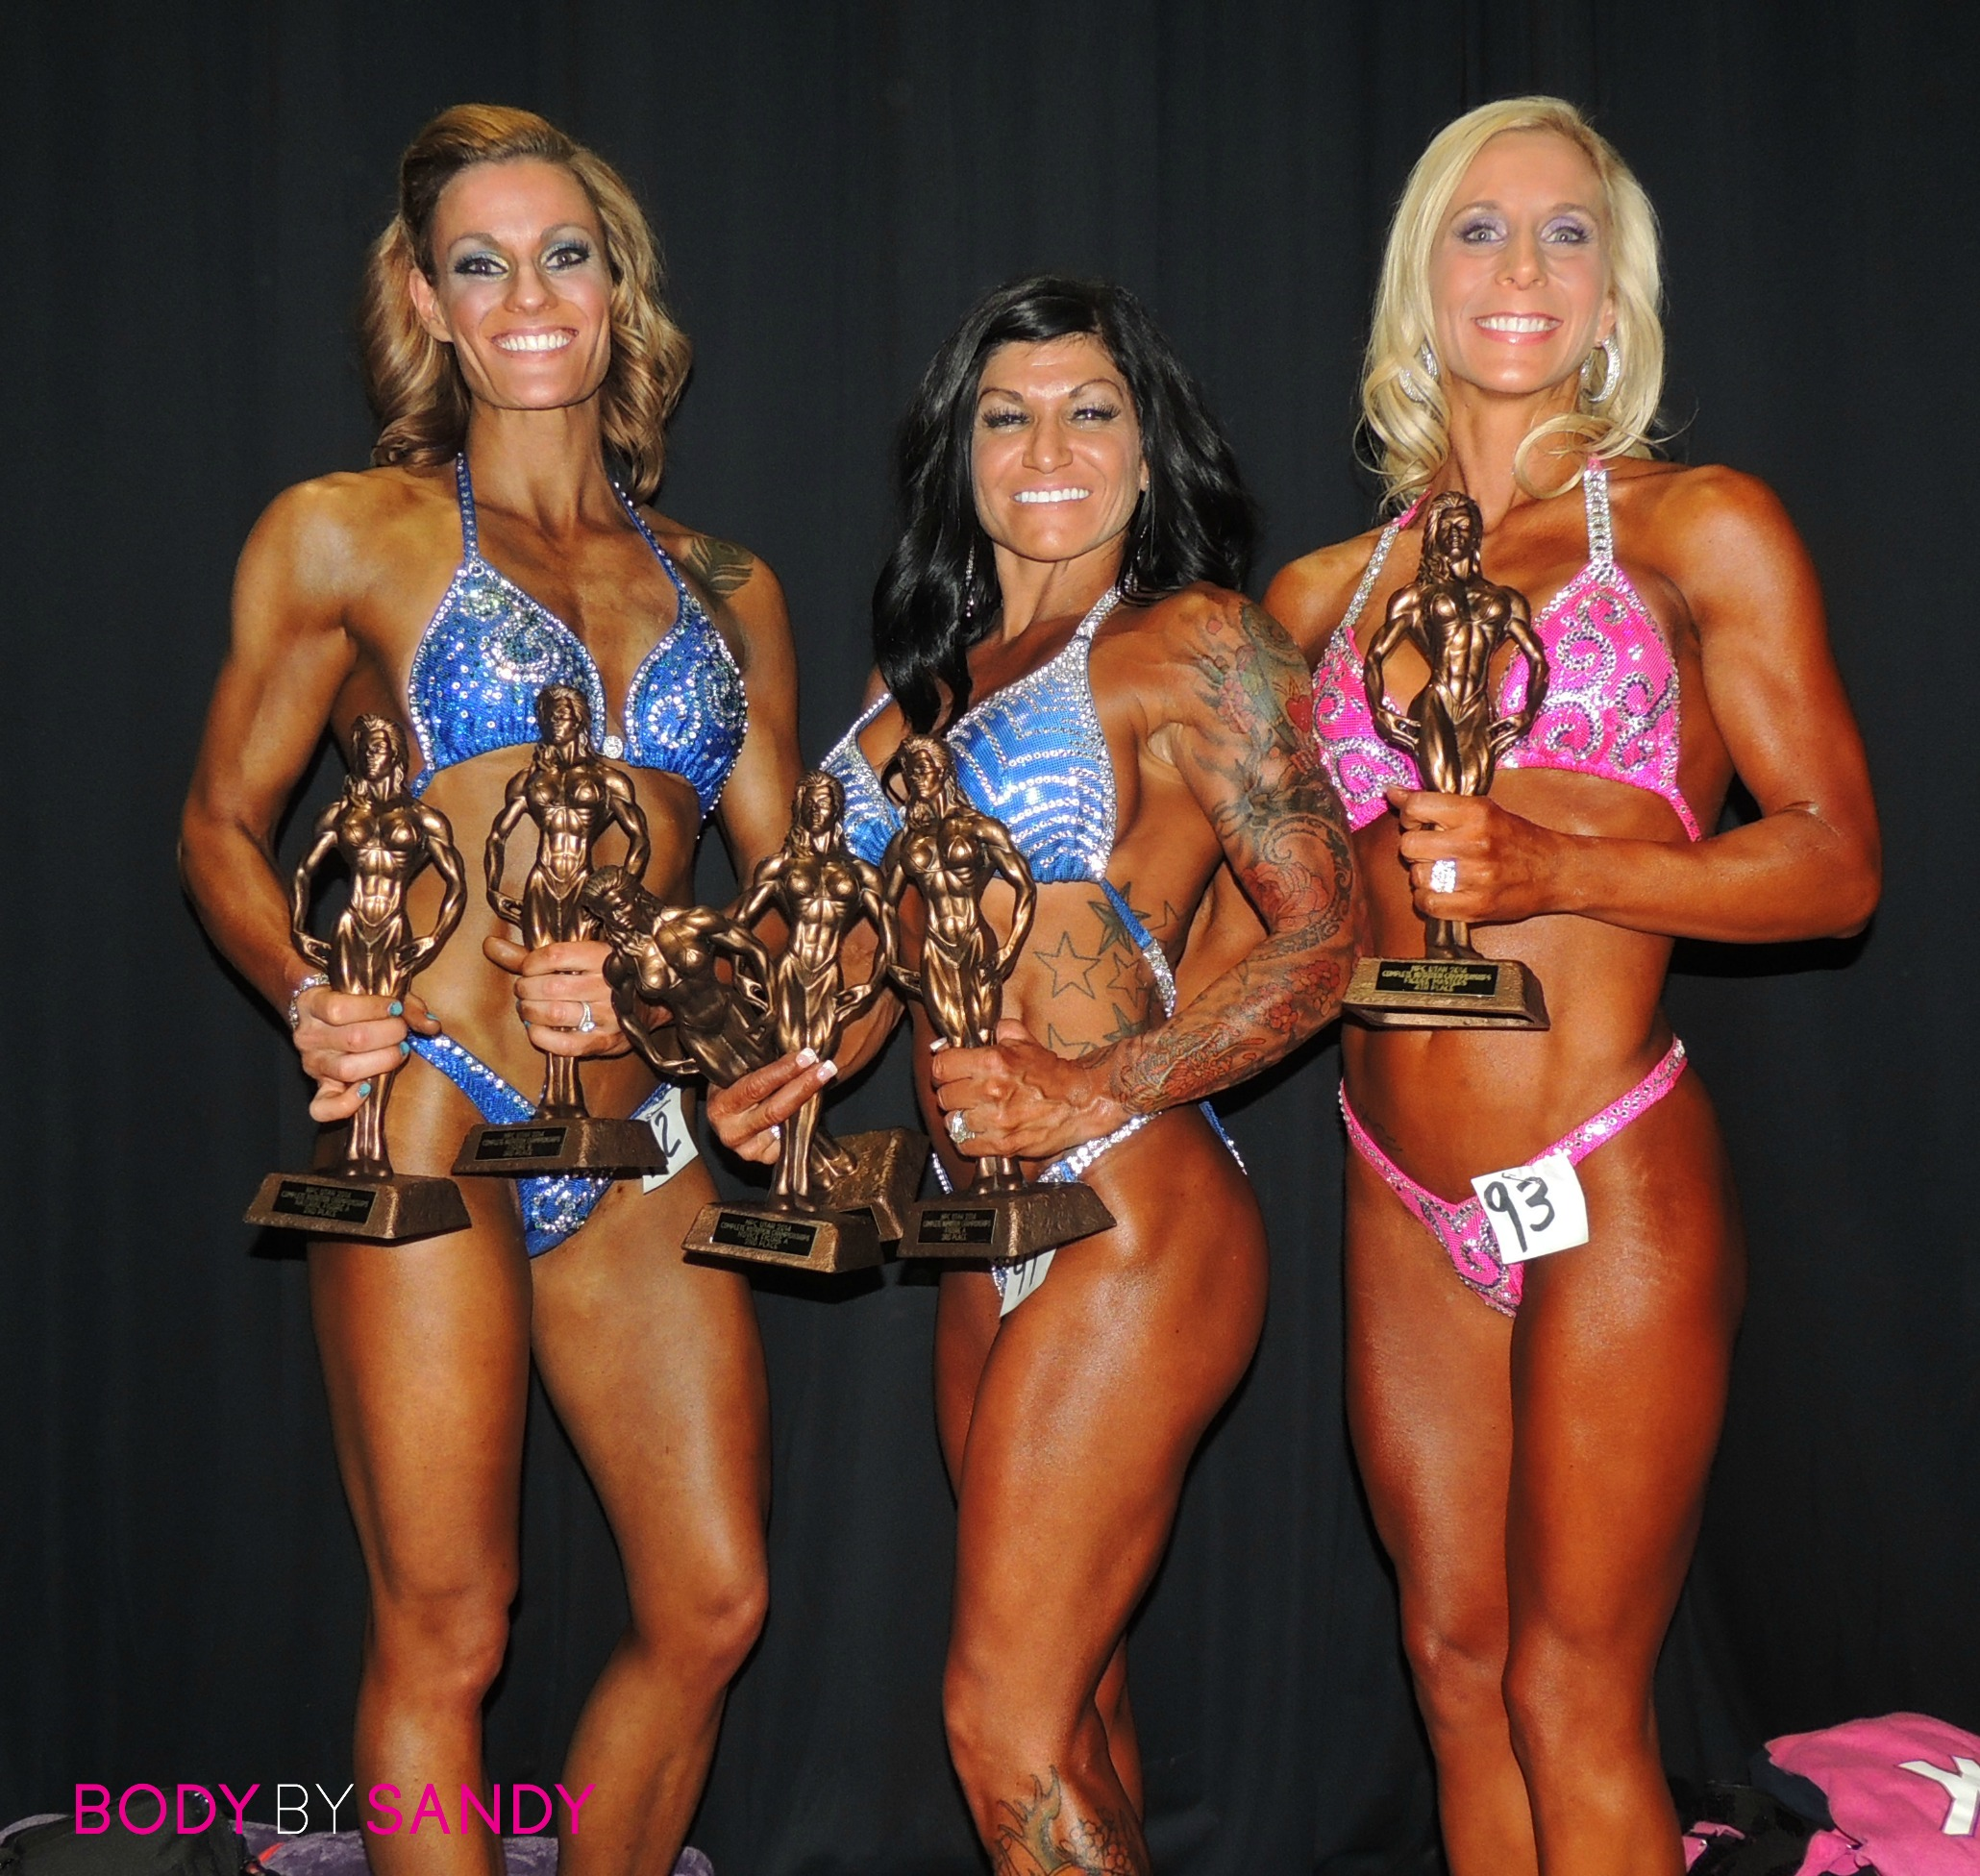 2014 NPC Complete Nutrition-Figure girls with trophies.JPG